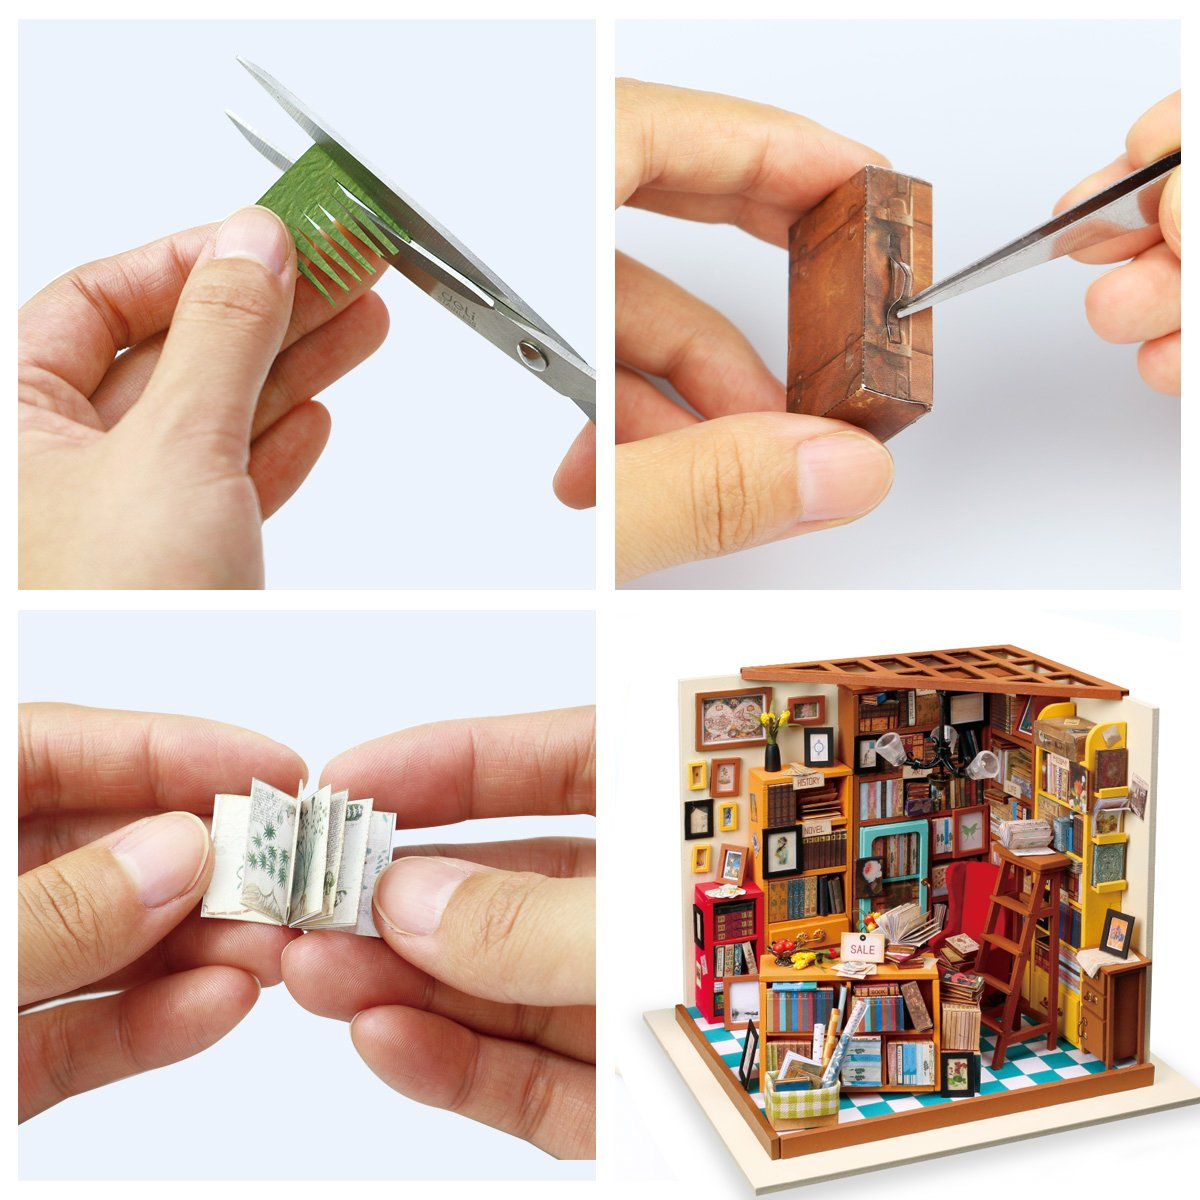 Rolife Wooden Miniature Dollhouse Kit with Light-DIY Art House Crafts-3D Wooden Model Building Sets-Perfect Birthday for Girls Women Friends Mom Wife 01 Sewing Room